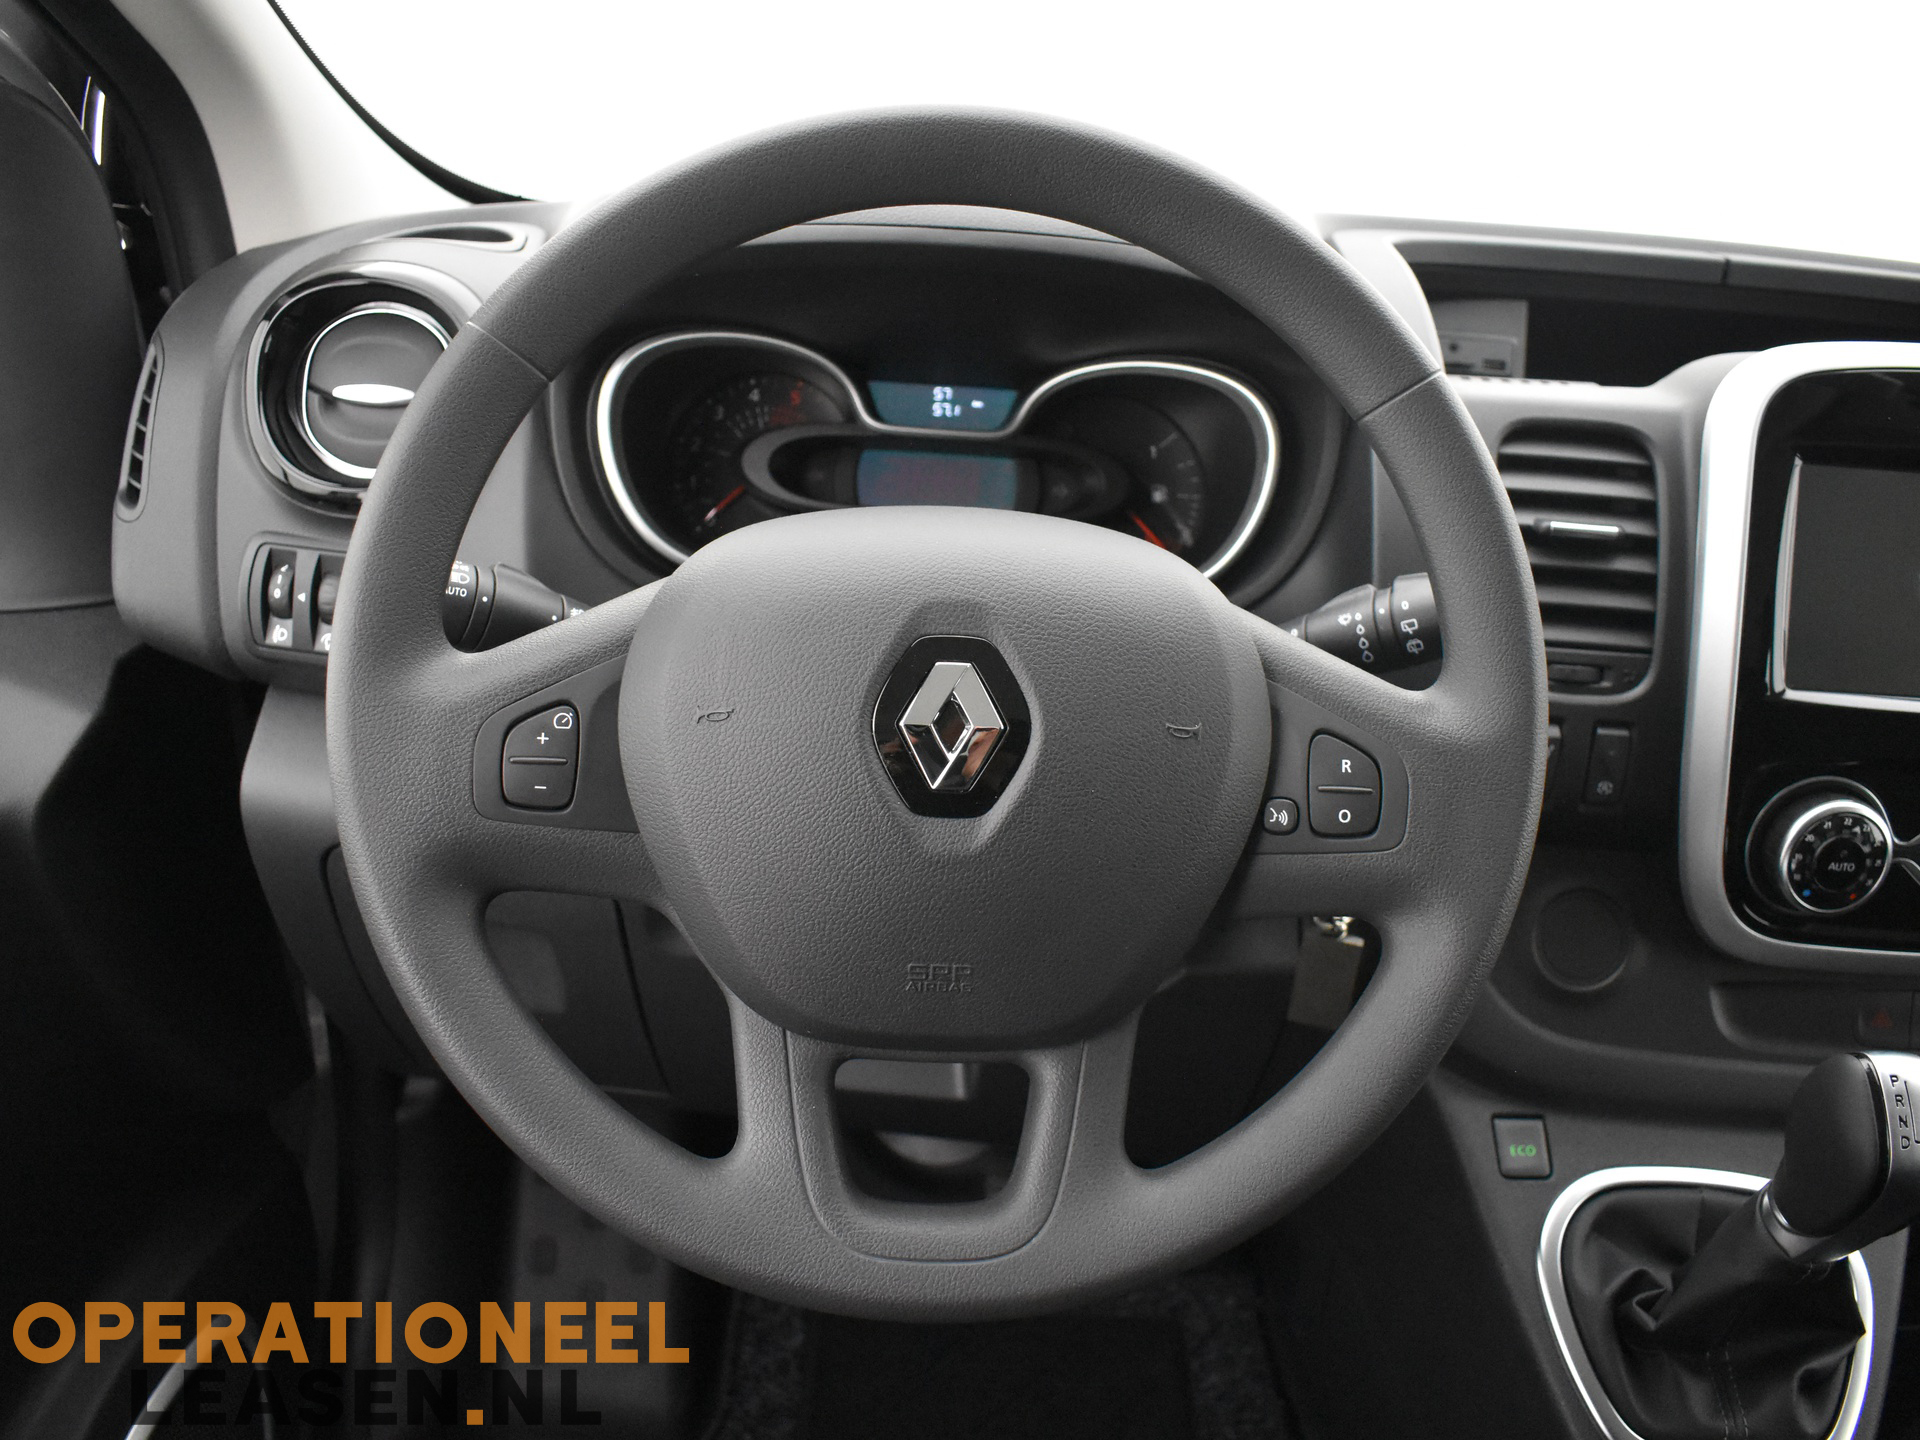 Operational lease Renault master traffic-15